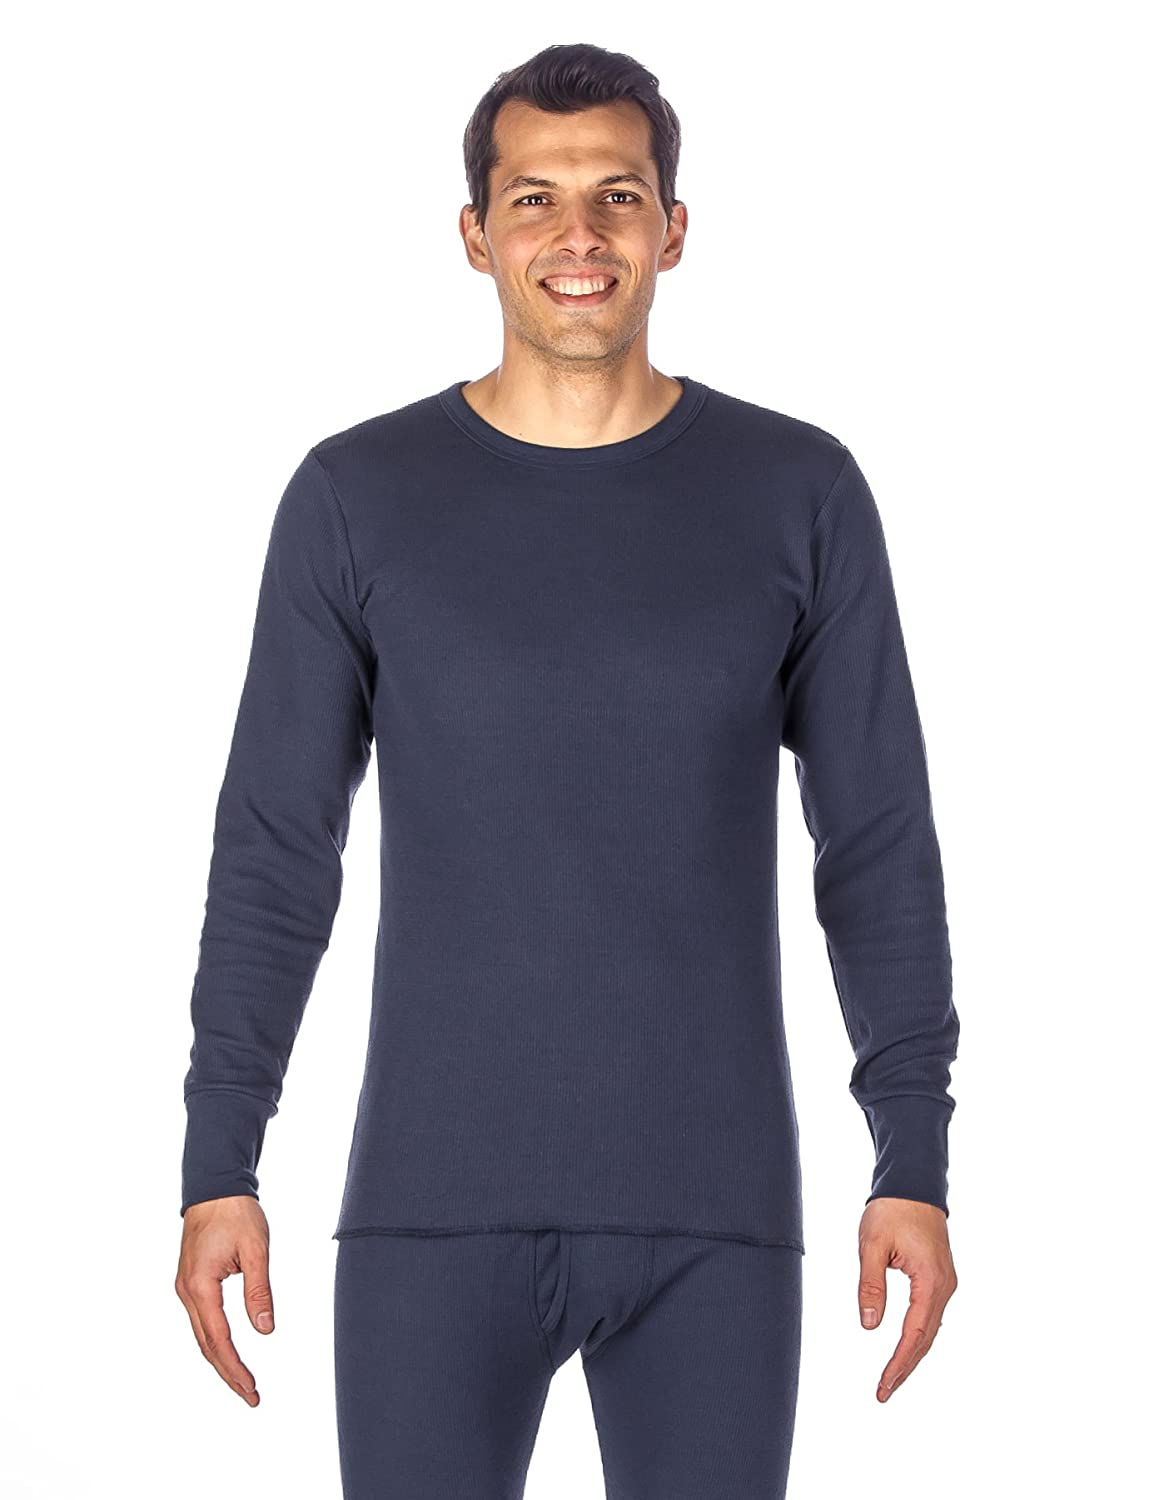 Noble Mount Men's Classic Waffle Knit Thermal Crew Top